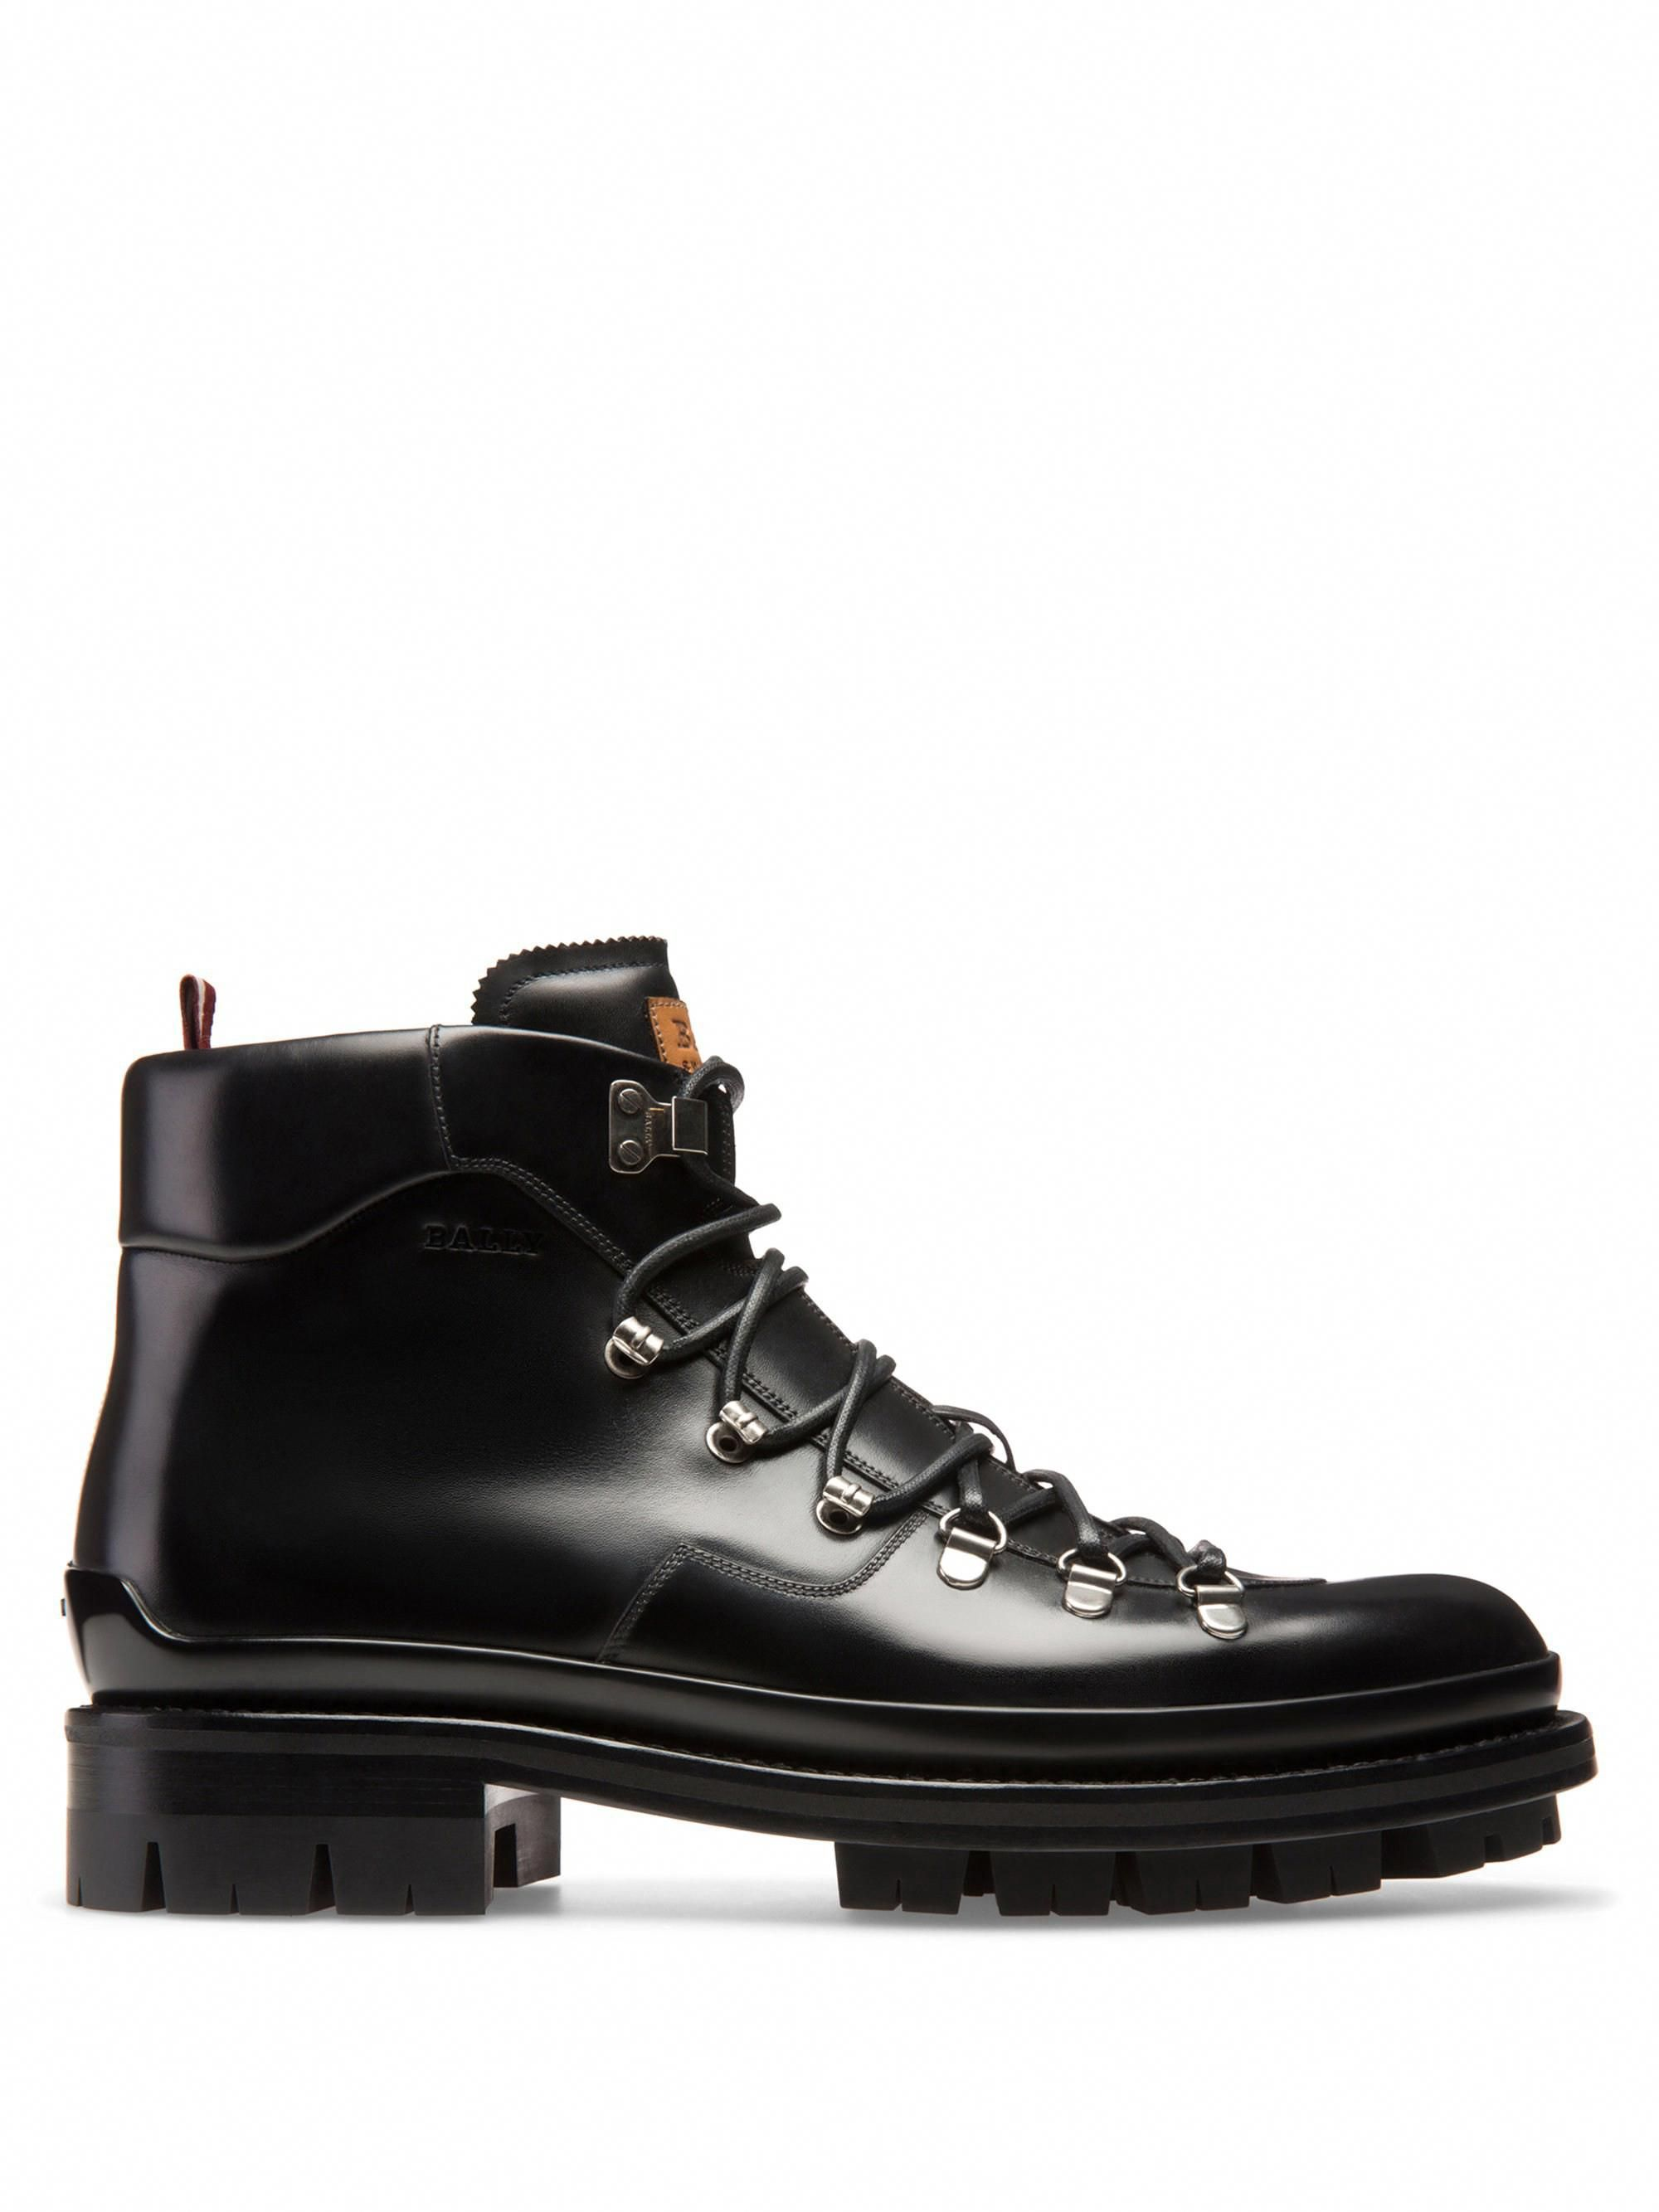 f93a75a07b3 Bally Medison Leather Hiking Boots - Black 8 D #hikeboots | Hiking ...